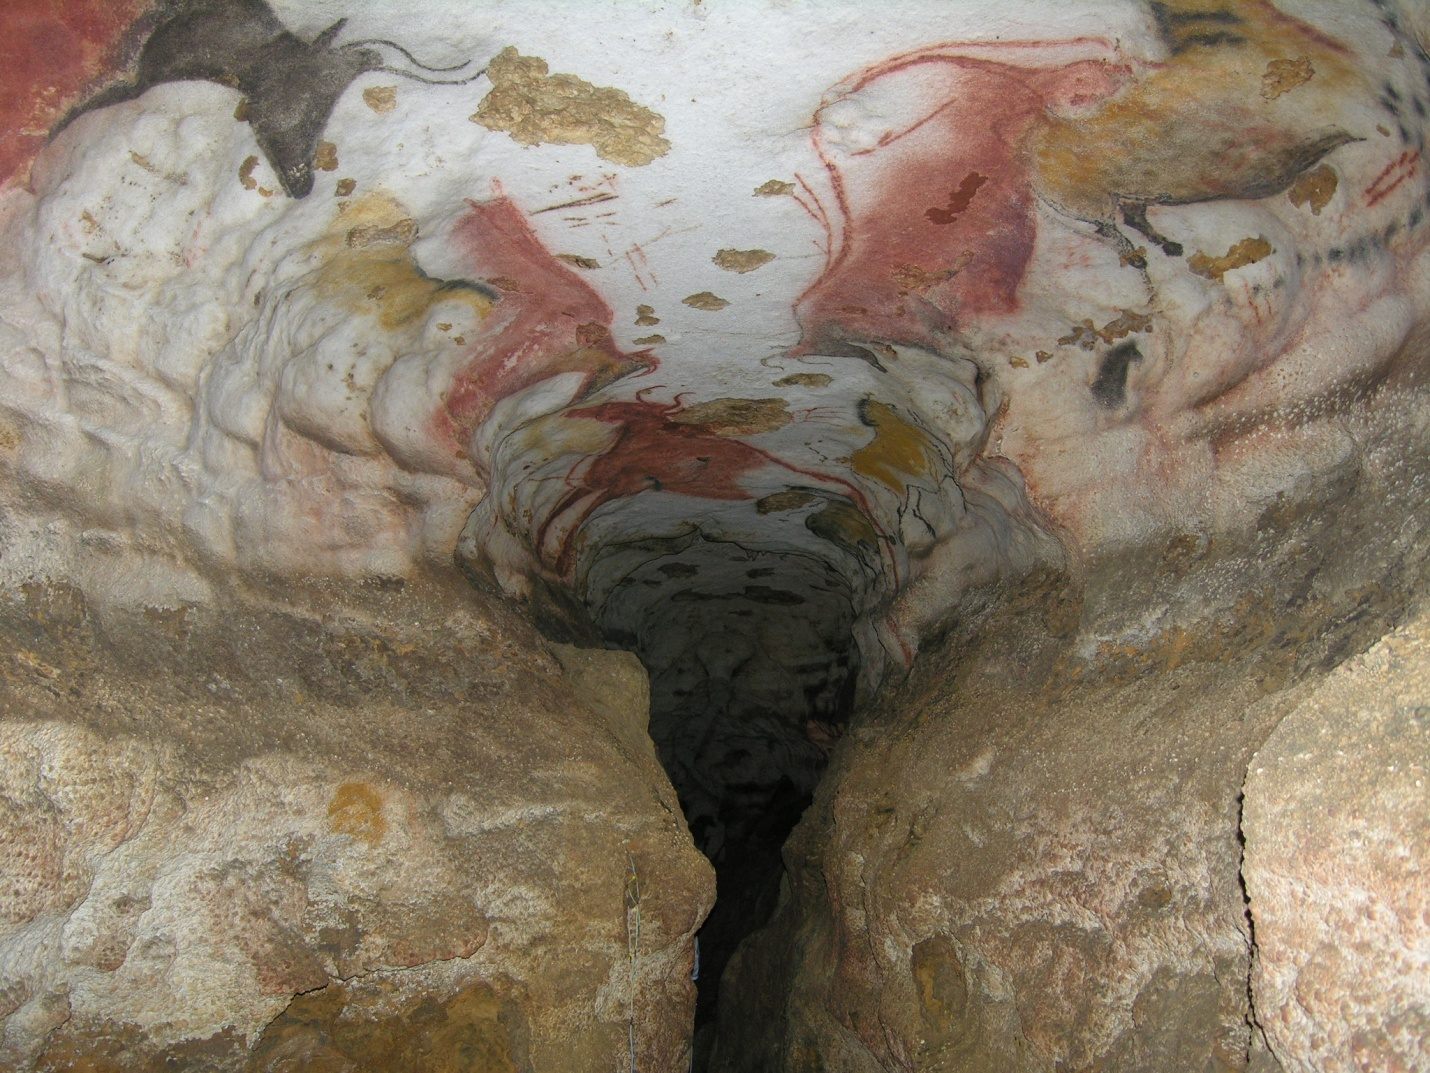 Lascaux cave in France. Shown here is the vaulted ceiling of the entrance to the Axial Gallery, a long passage where polychromatic figurative and geometric motifs were painted; the depicted zoomorphic figures form a bestiary comprised of aurochs and wild horses.